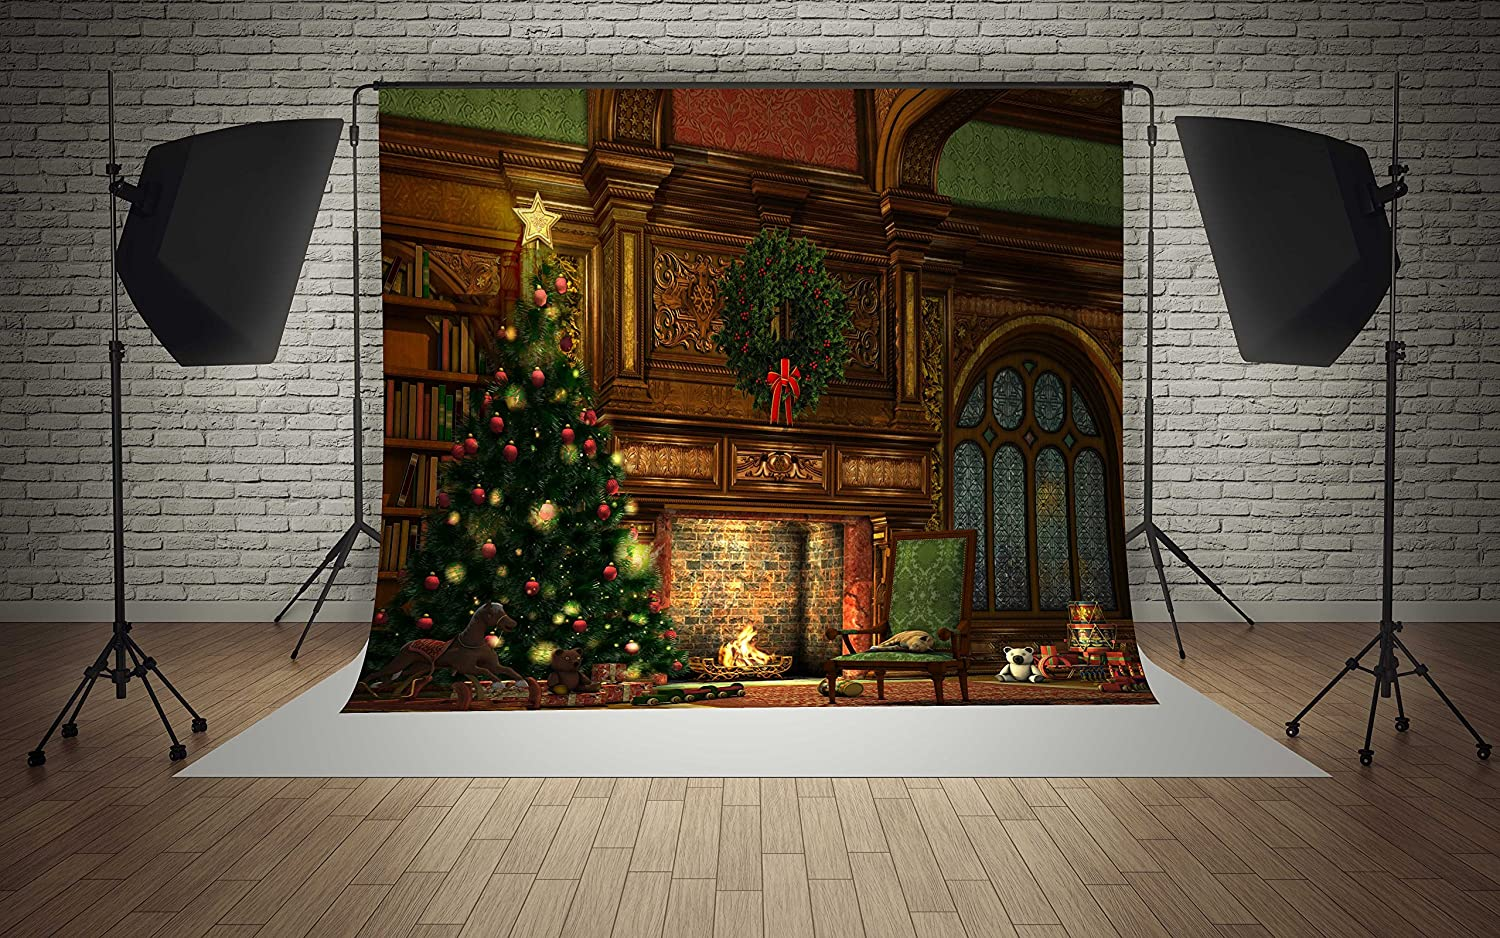 8x8ft Microfiber Interior Castle Christmas Tree Presents Fireplace Party Decorations Photo Booth Background Seamless Collapsible Washable and No Creases Photography Backdrop